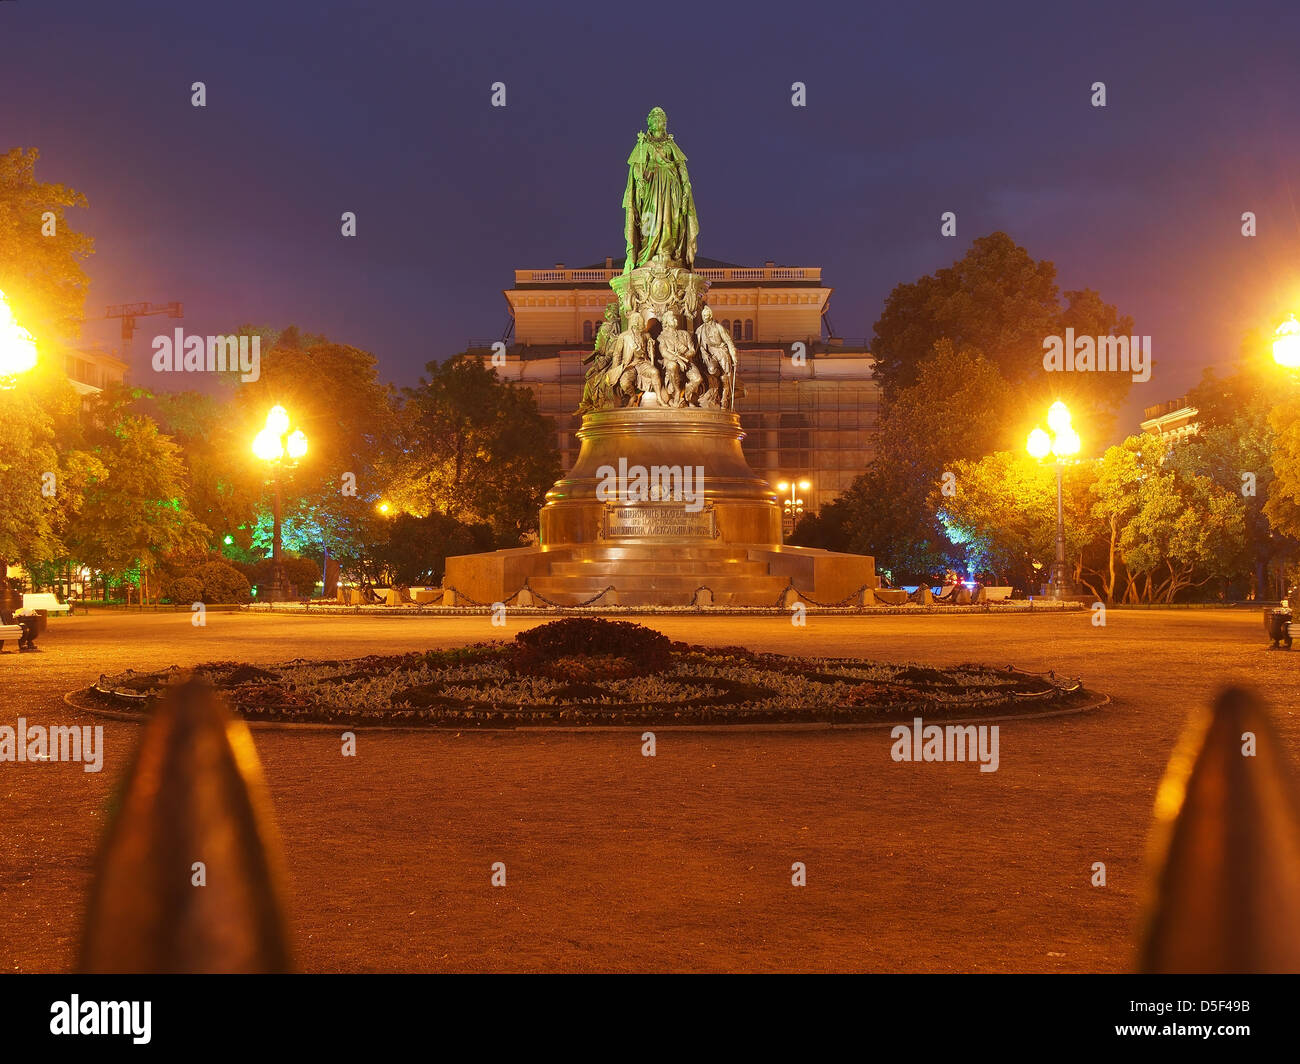 Monument to Catherine the Great in front of the Alexandrinsky Theatre at the White Nights, Saint Petersburg, Russian - Stock Image